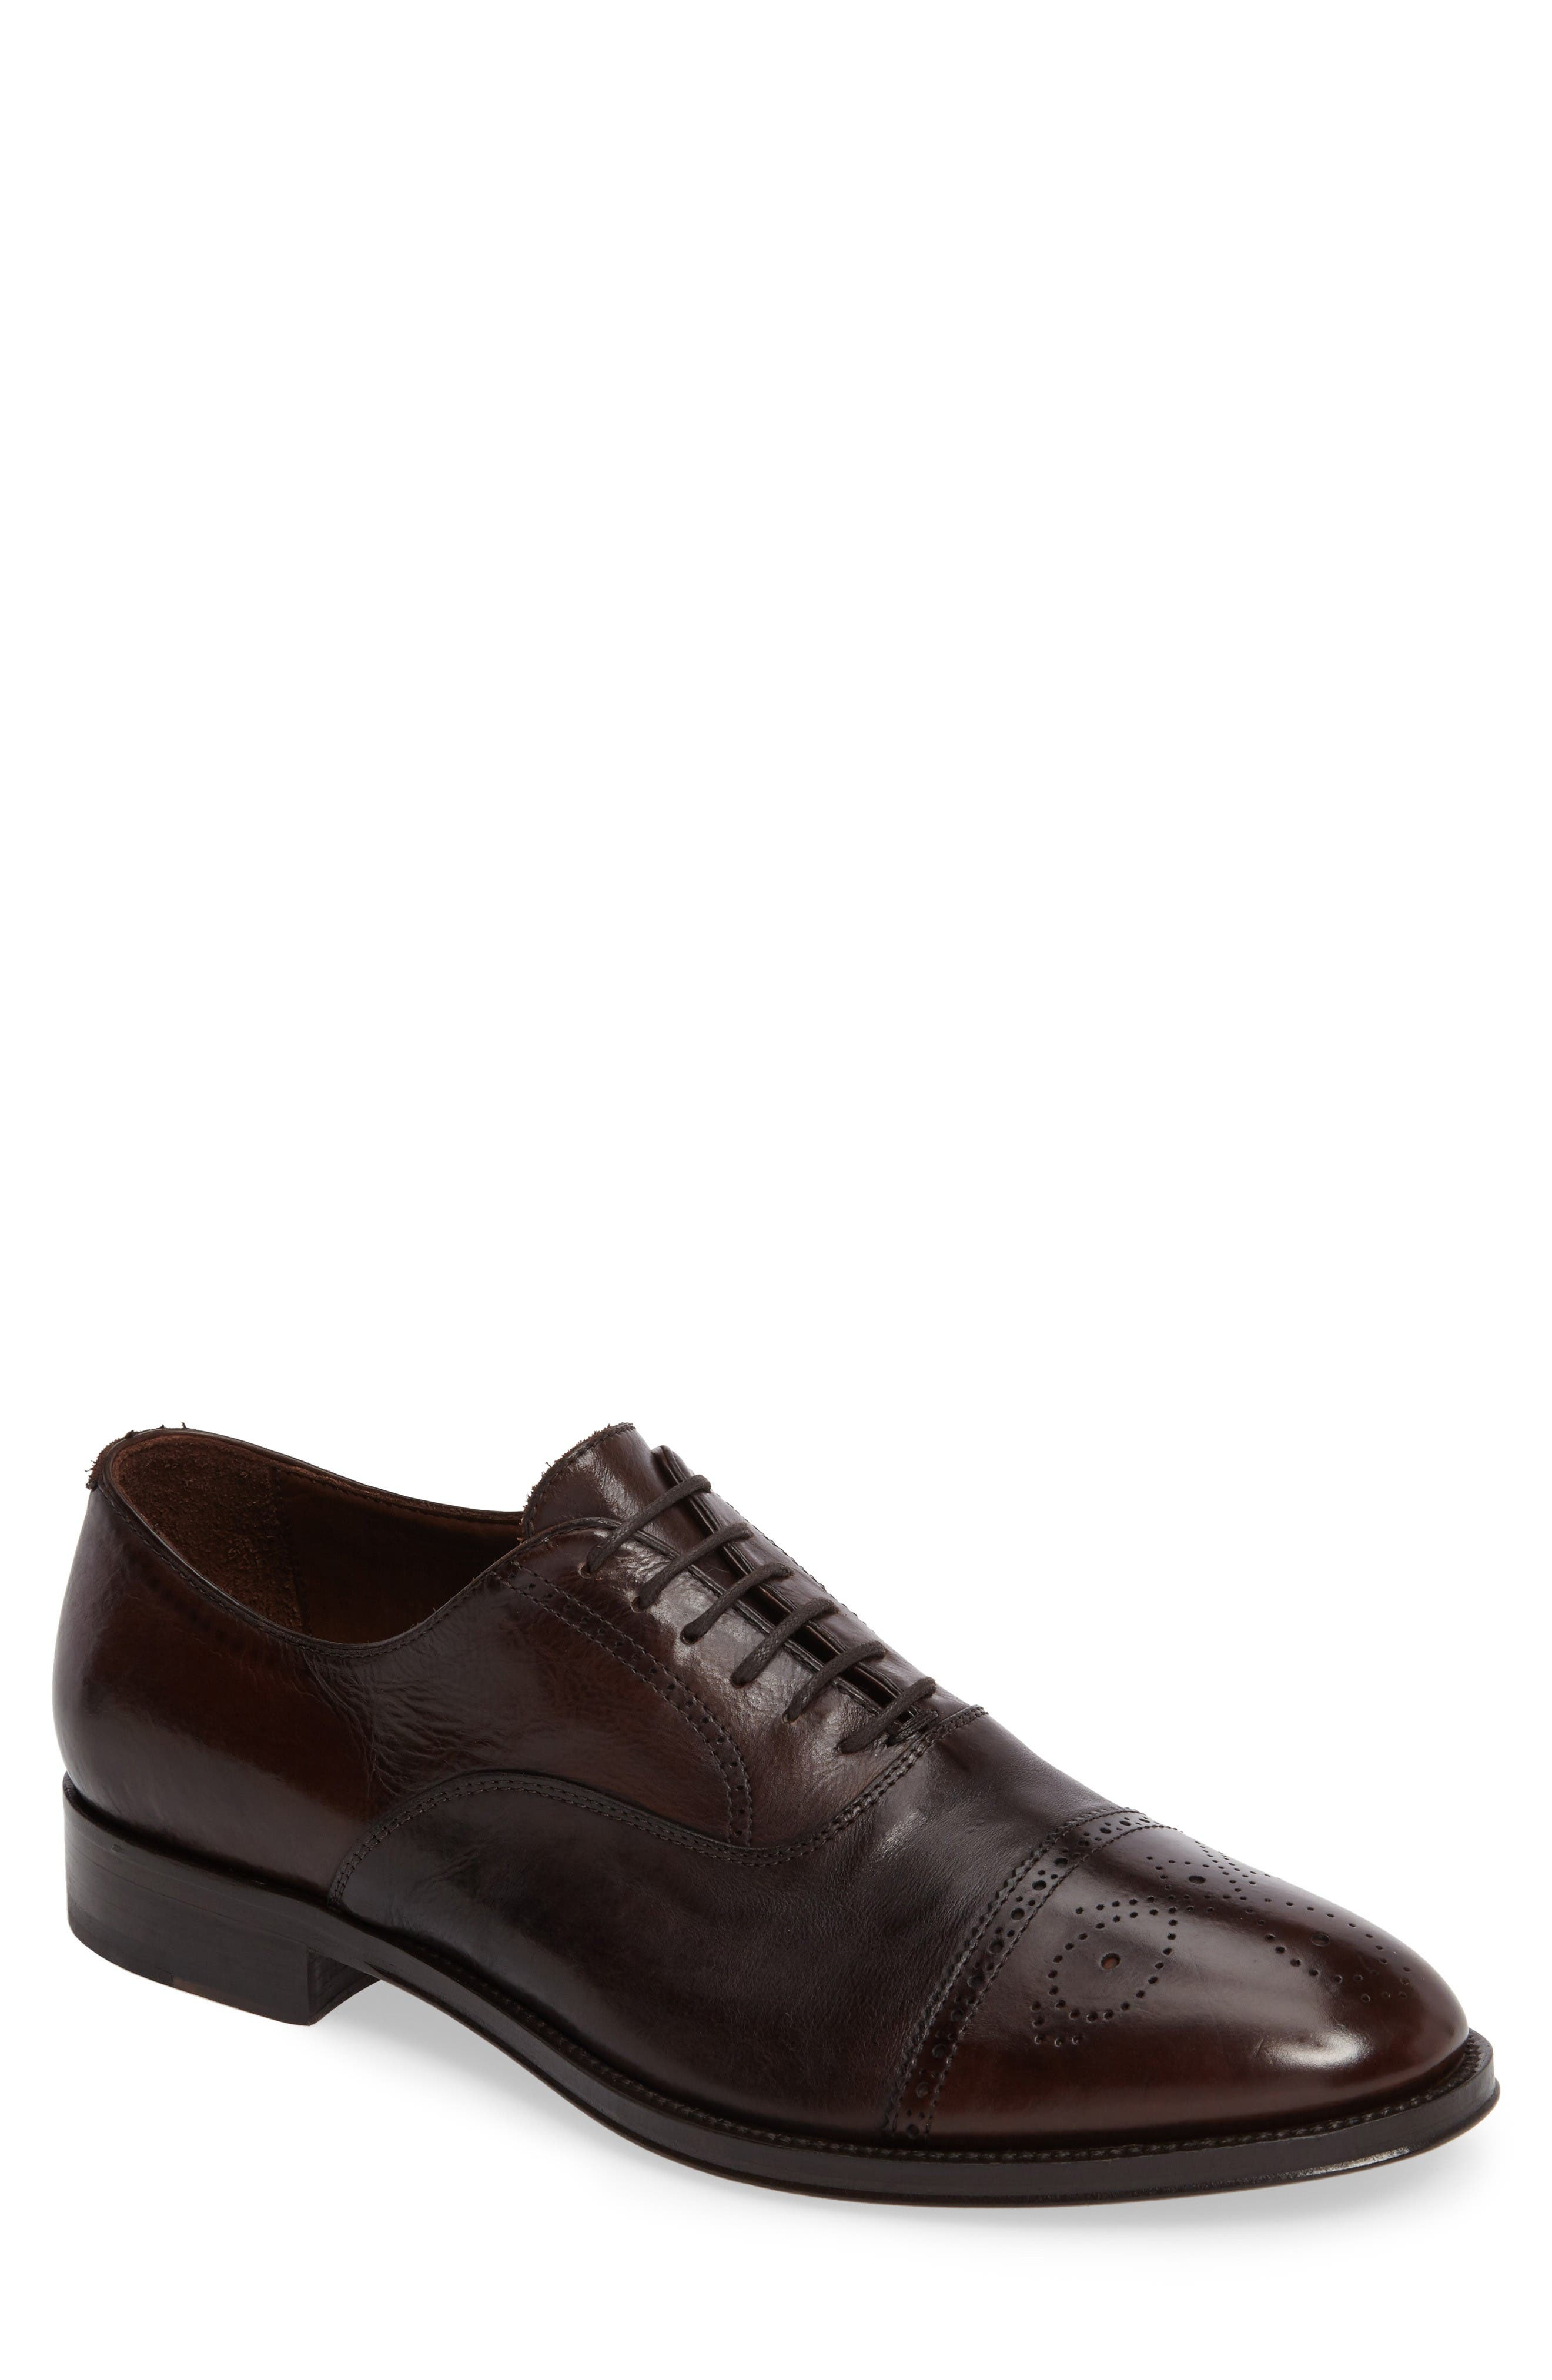 Gordon Rush Jaxon Cap Toe Oxford (Men)